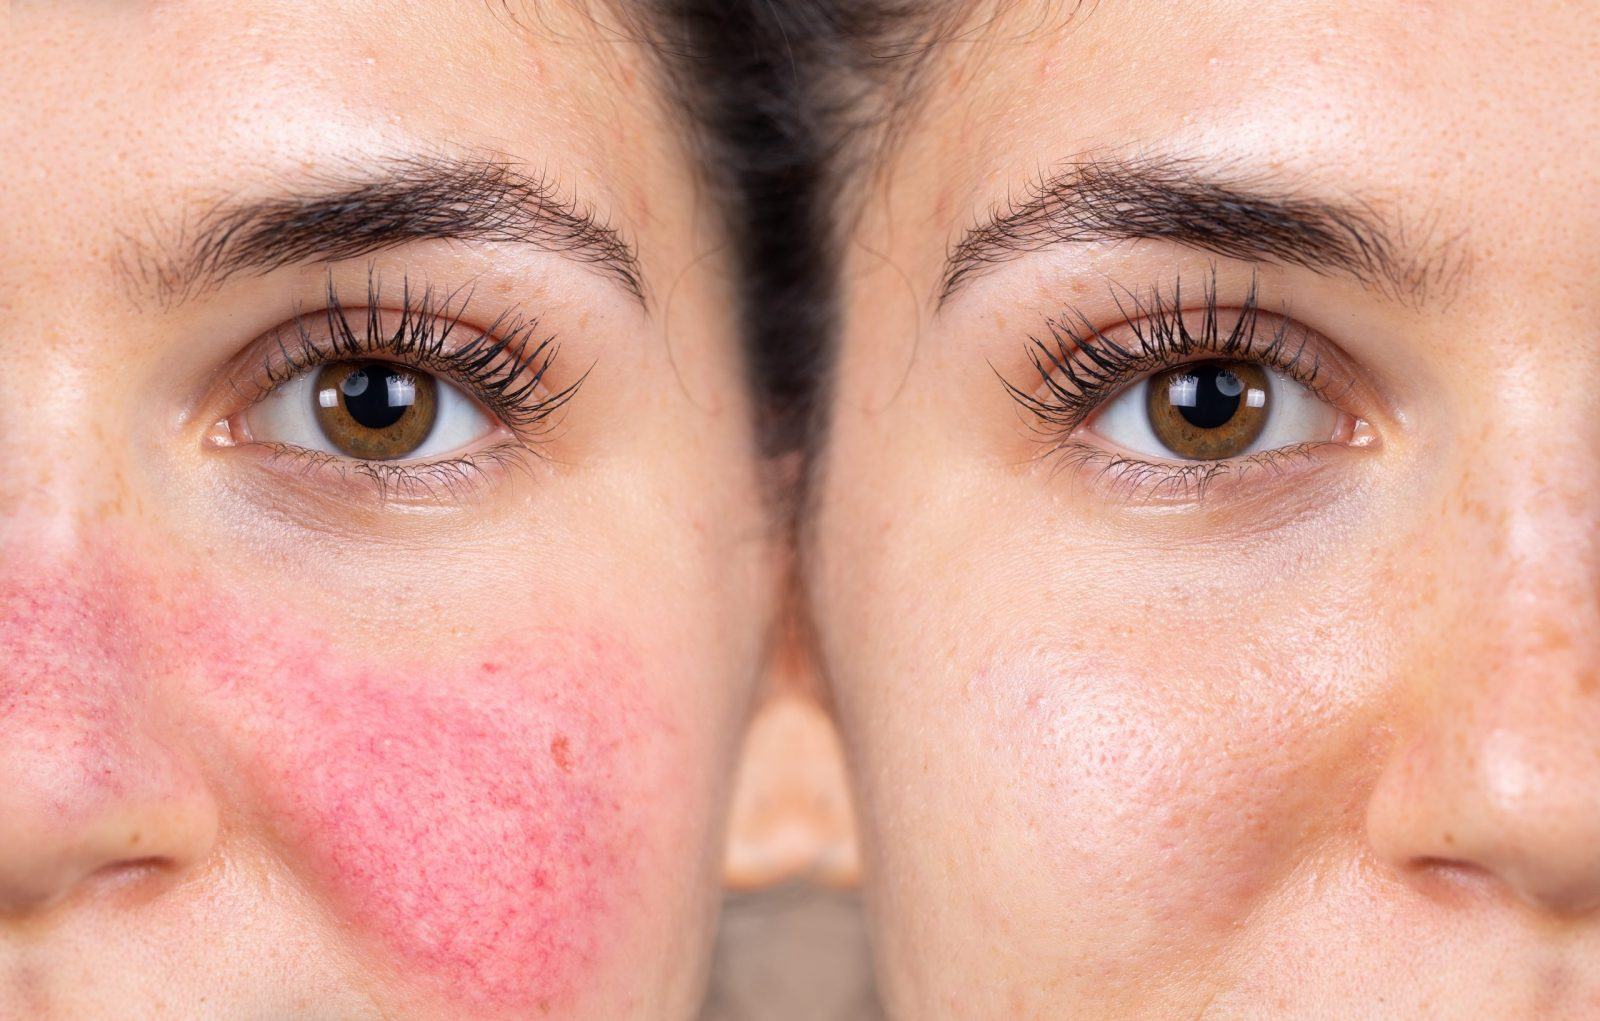 HOW TO COPE WITH ROSACEA